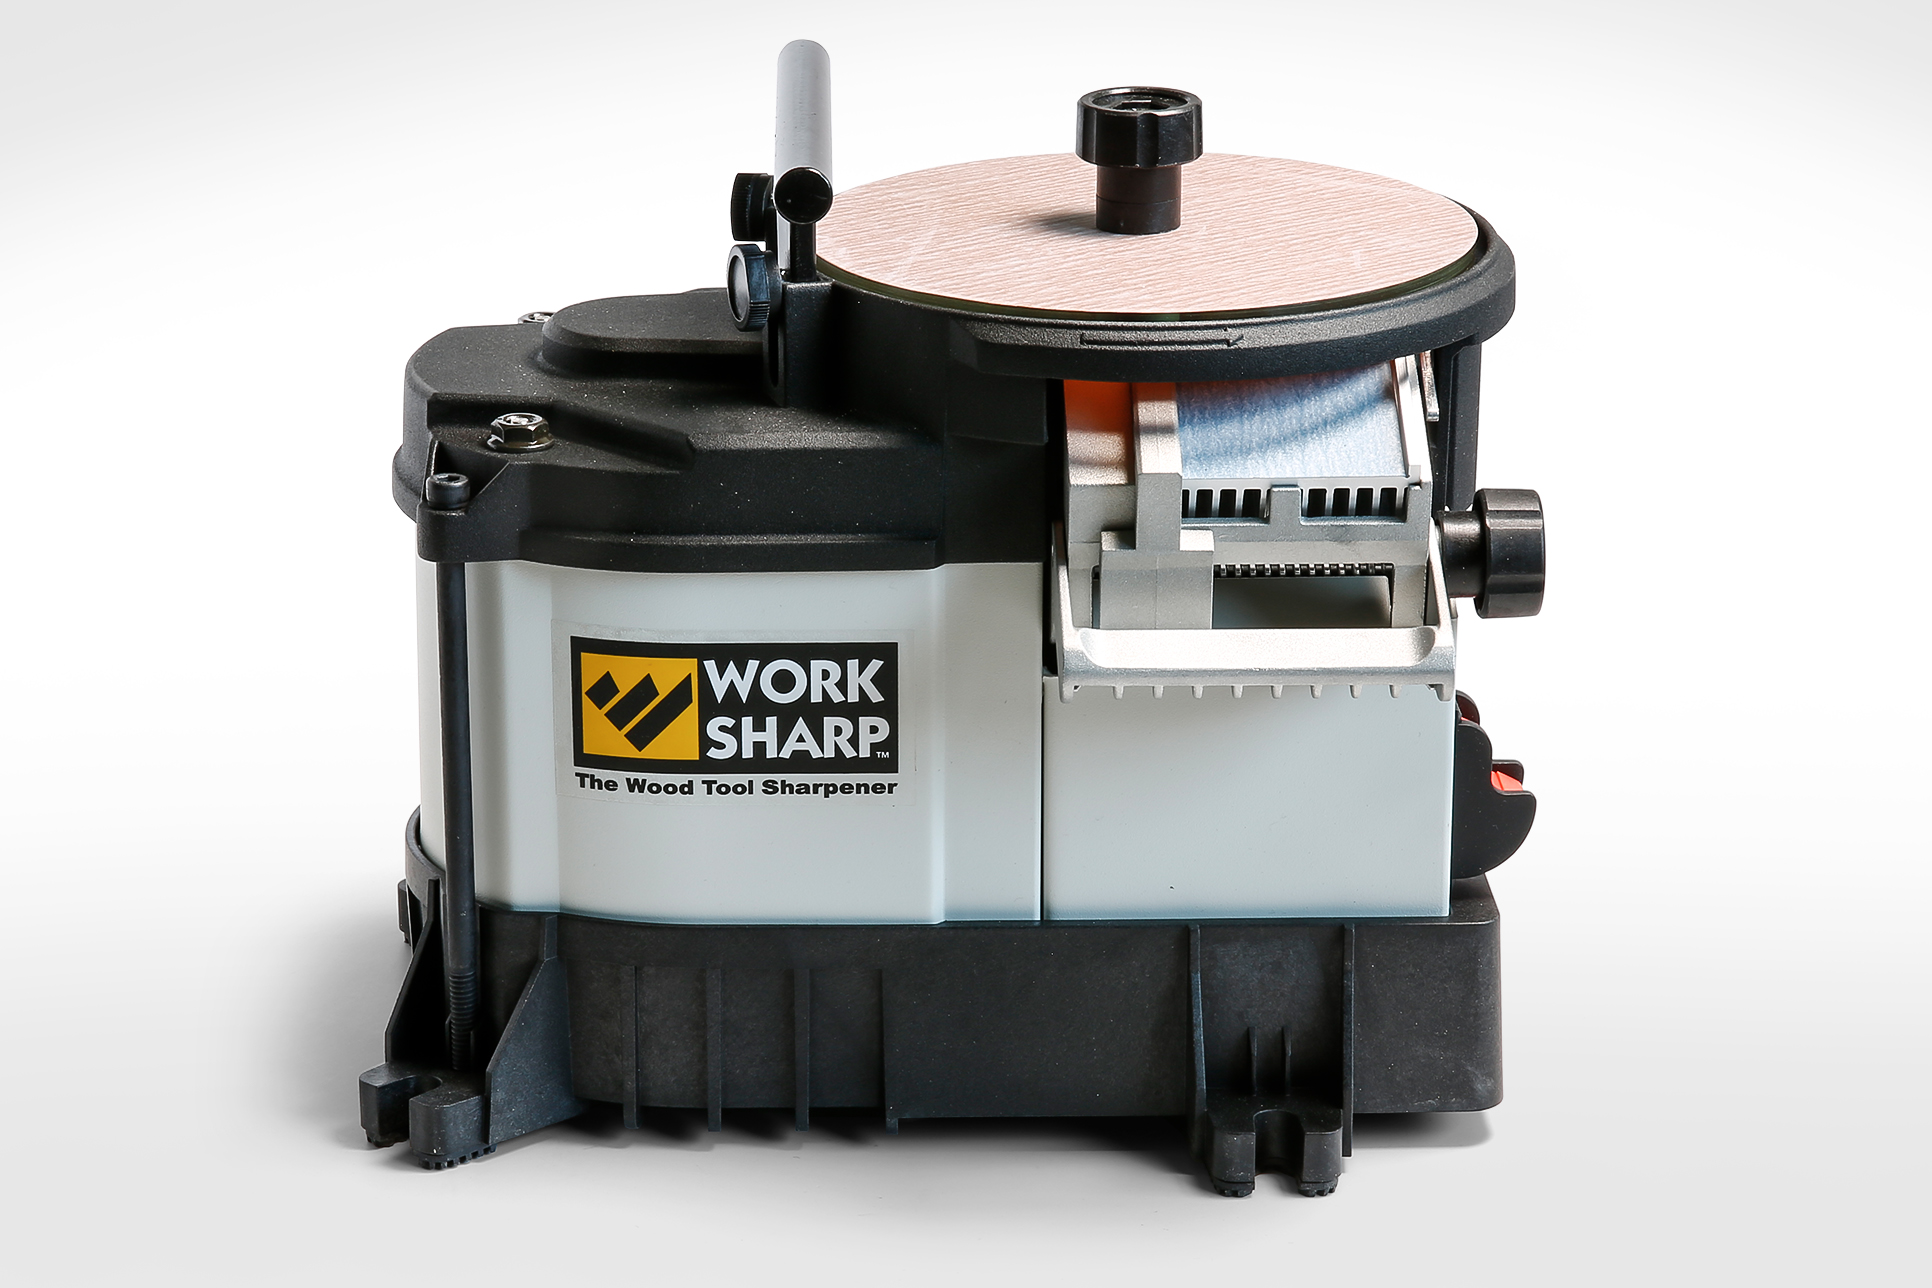 WorkSharp WS3000 Woodworking Tool Sharpener